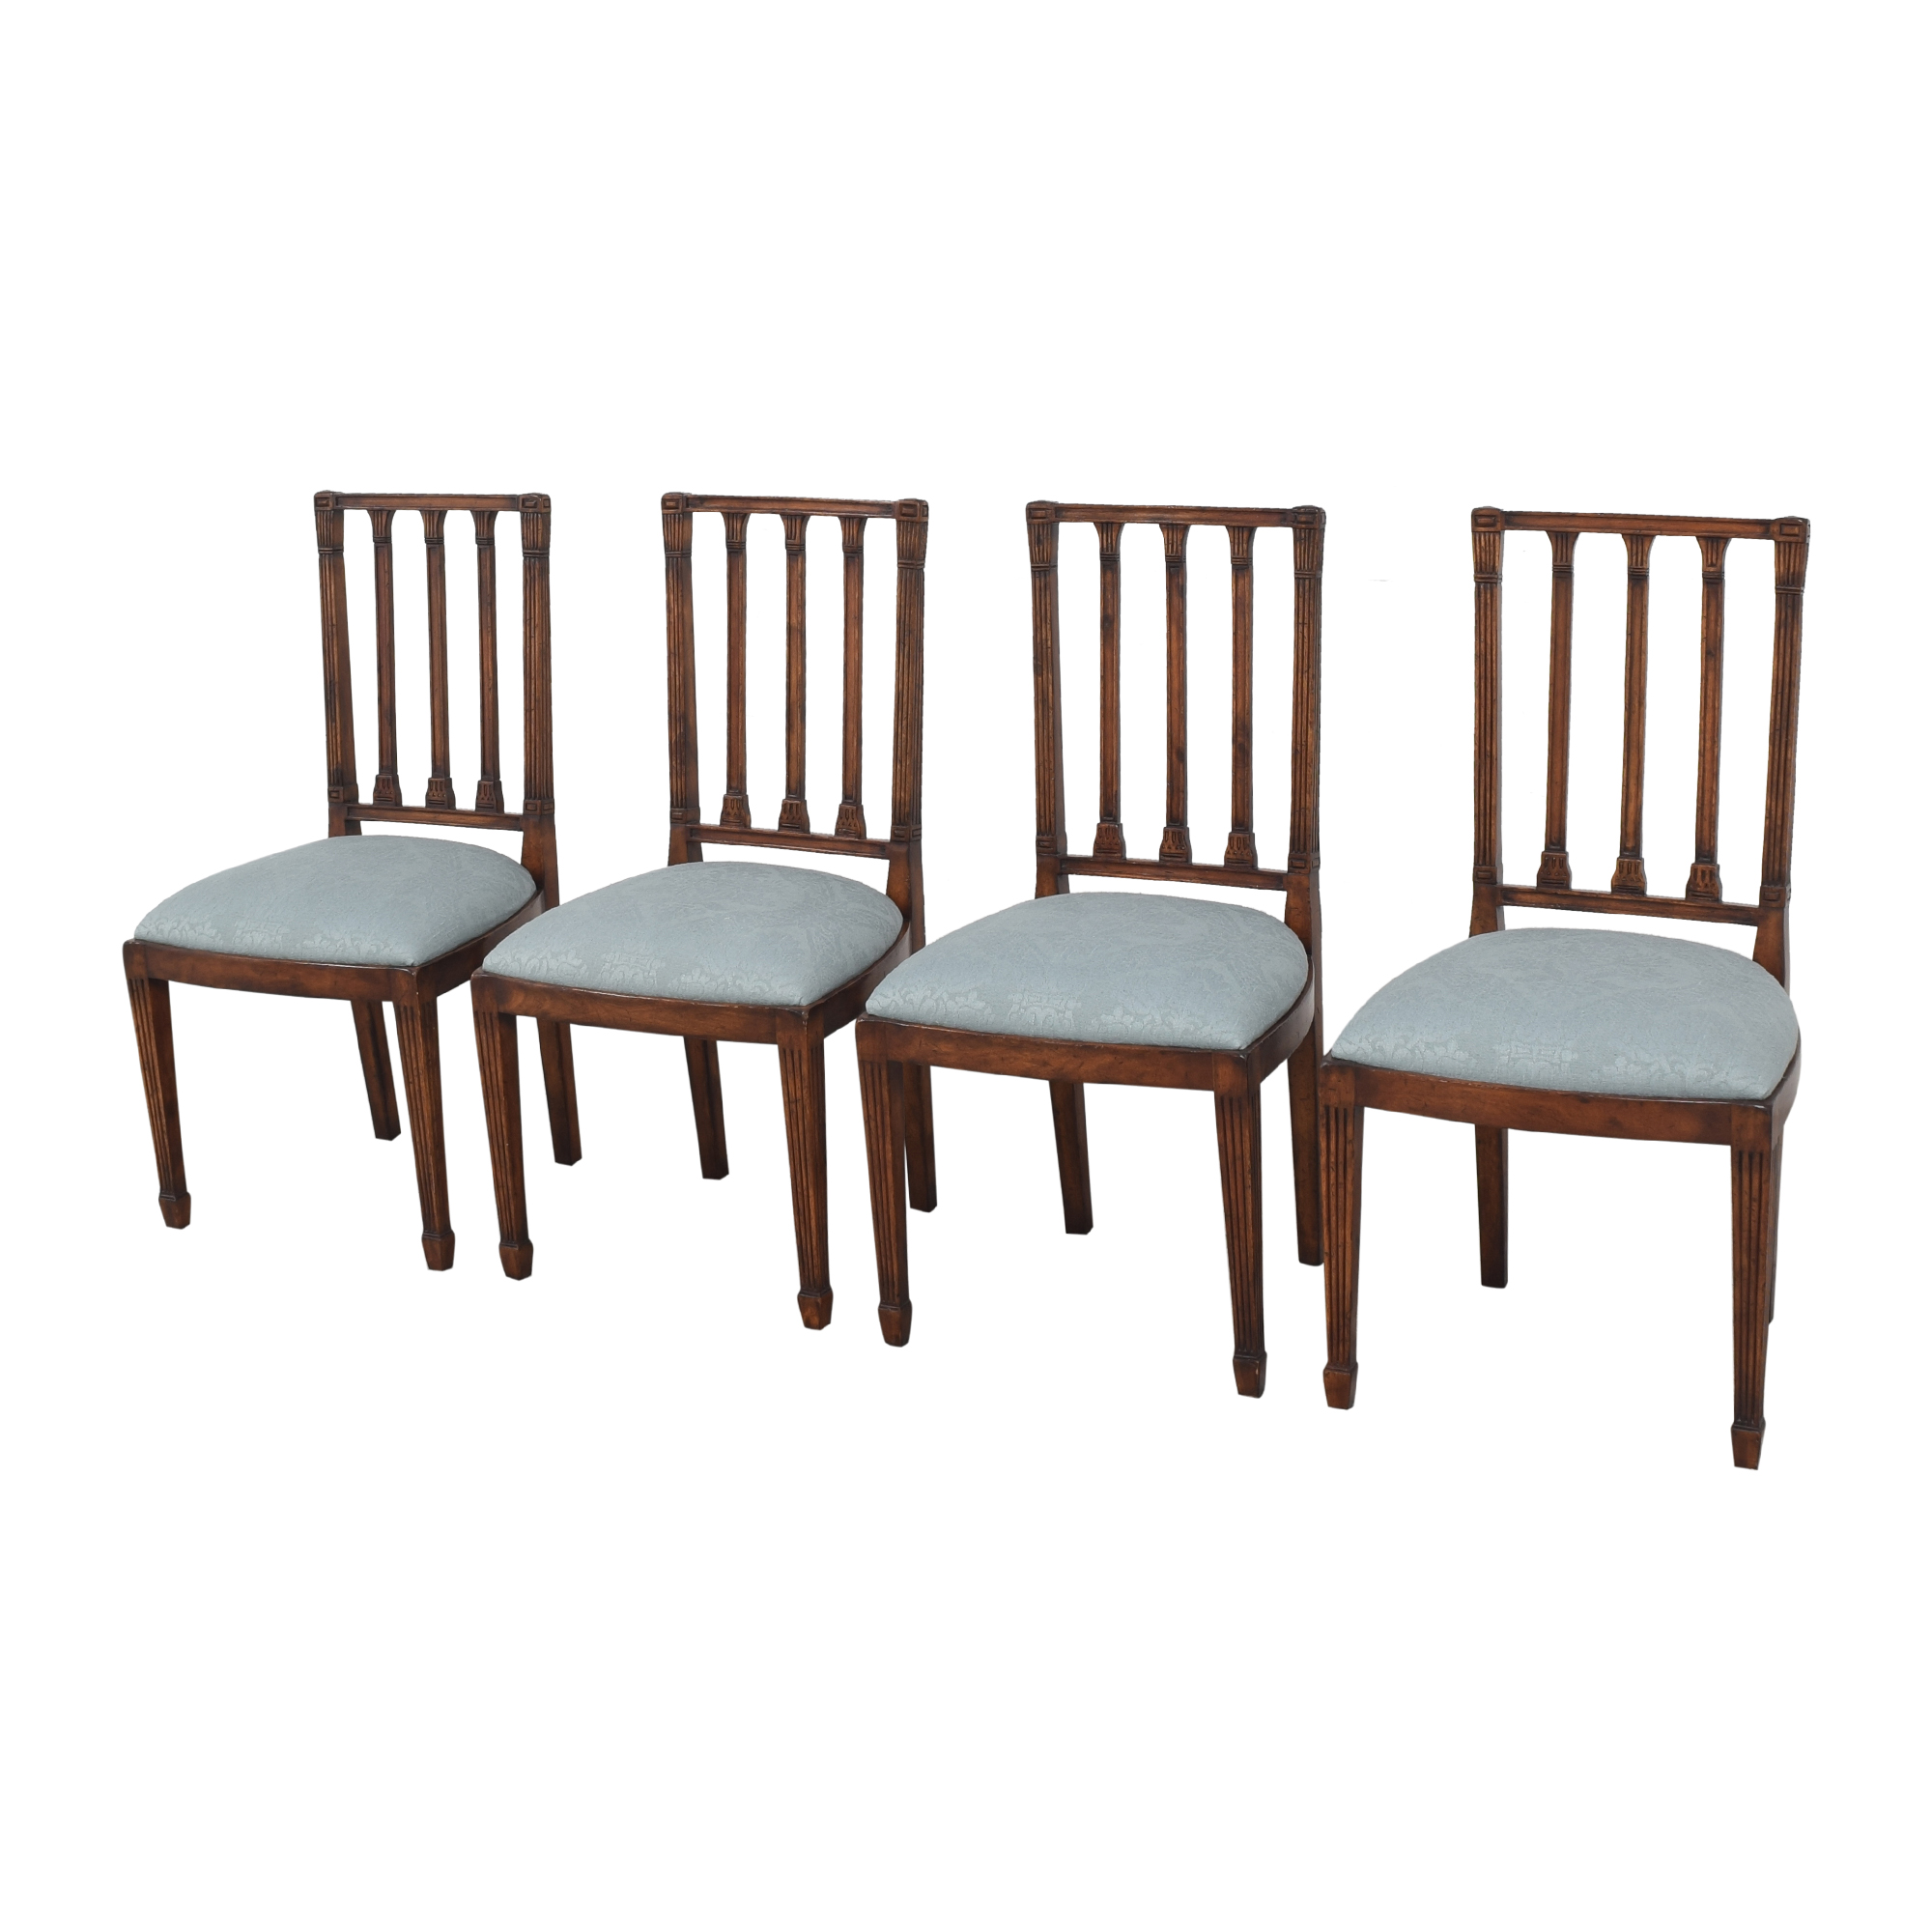 English Country Home English Country Home Upholstered Dining Chairs discount